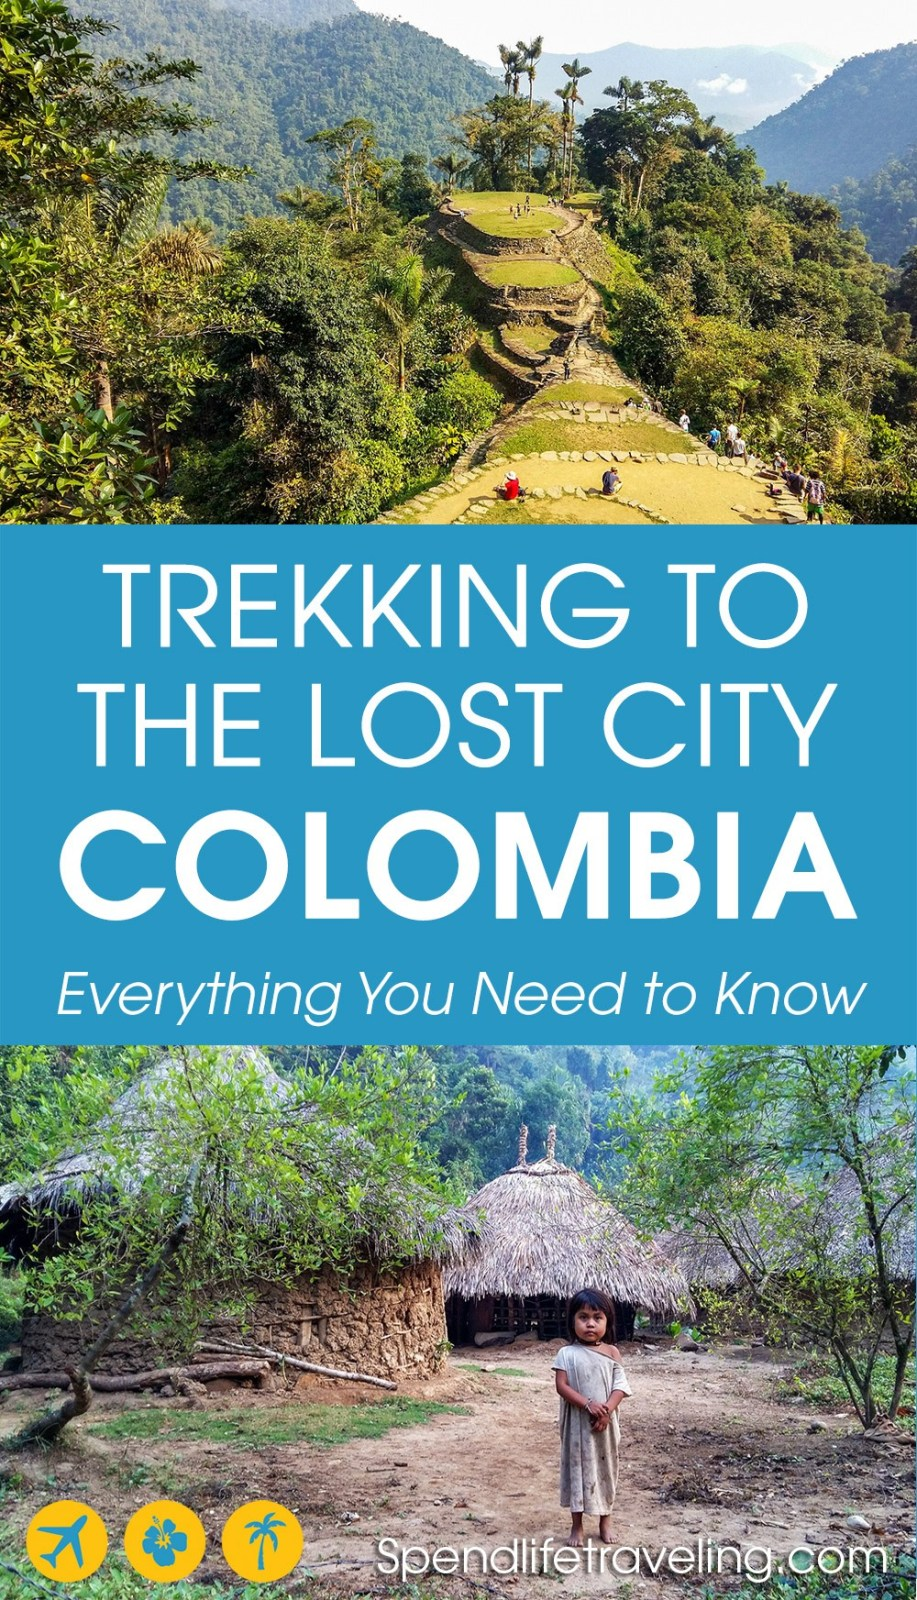 A complete guide to trekking to the Lost City (Ciudad Perdida) in Colombia. Not as many people know about this but it is just as impressive as Machu Picchu! #travelColombia #LostCity #CiudadPerdida #traveltips #trekking